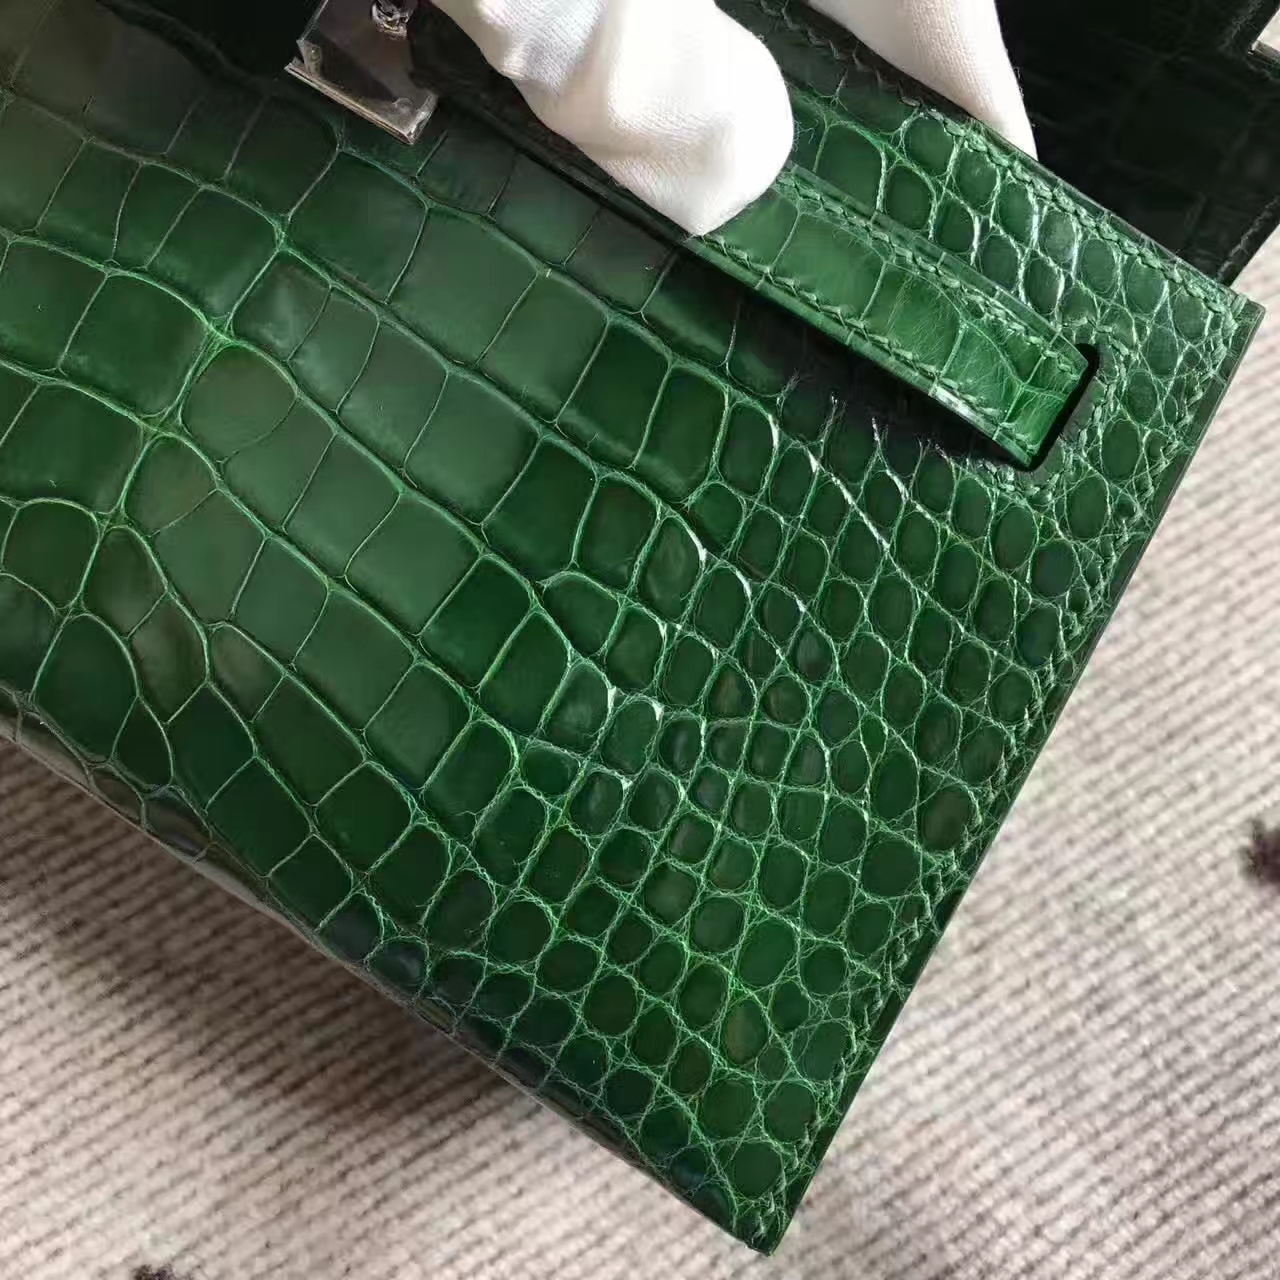 New Arrival Hermes 1L Cacti Green Crocodile Shiny Leather Minikelly Bag 22cm